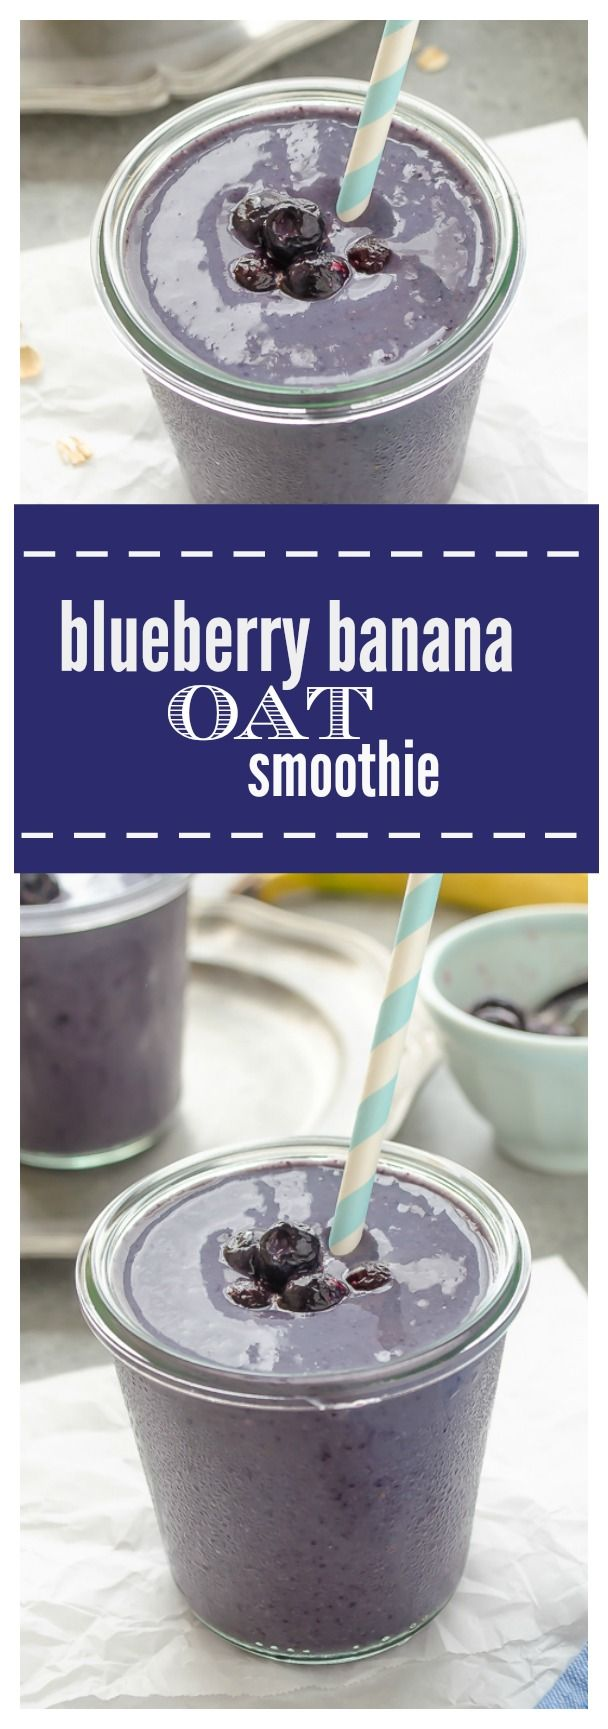 Blueberry Banana Oat Smoothie is a vegan smoothie packed with antioxidants and potassium. It's a great way to start the day! @Flavor the Moments